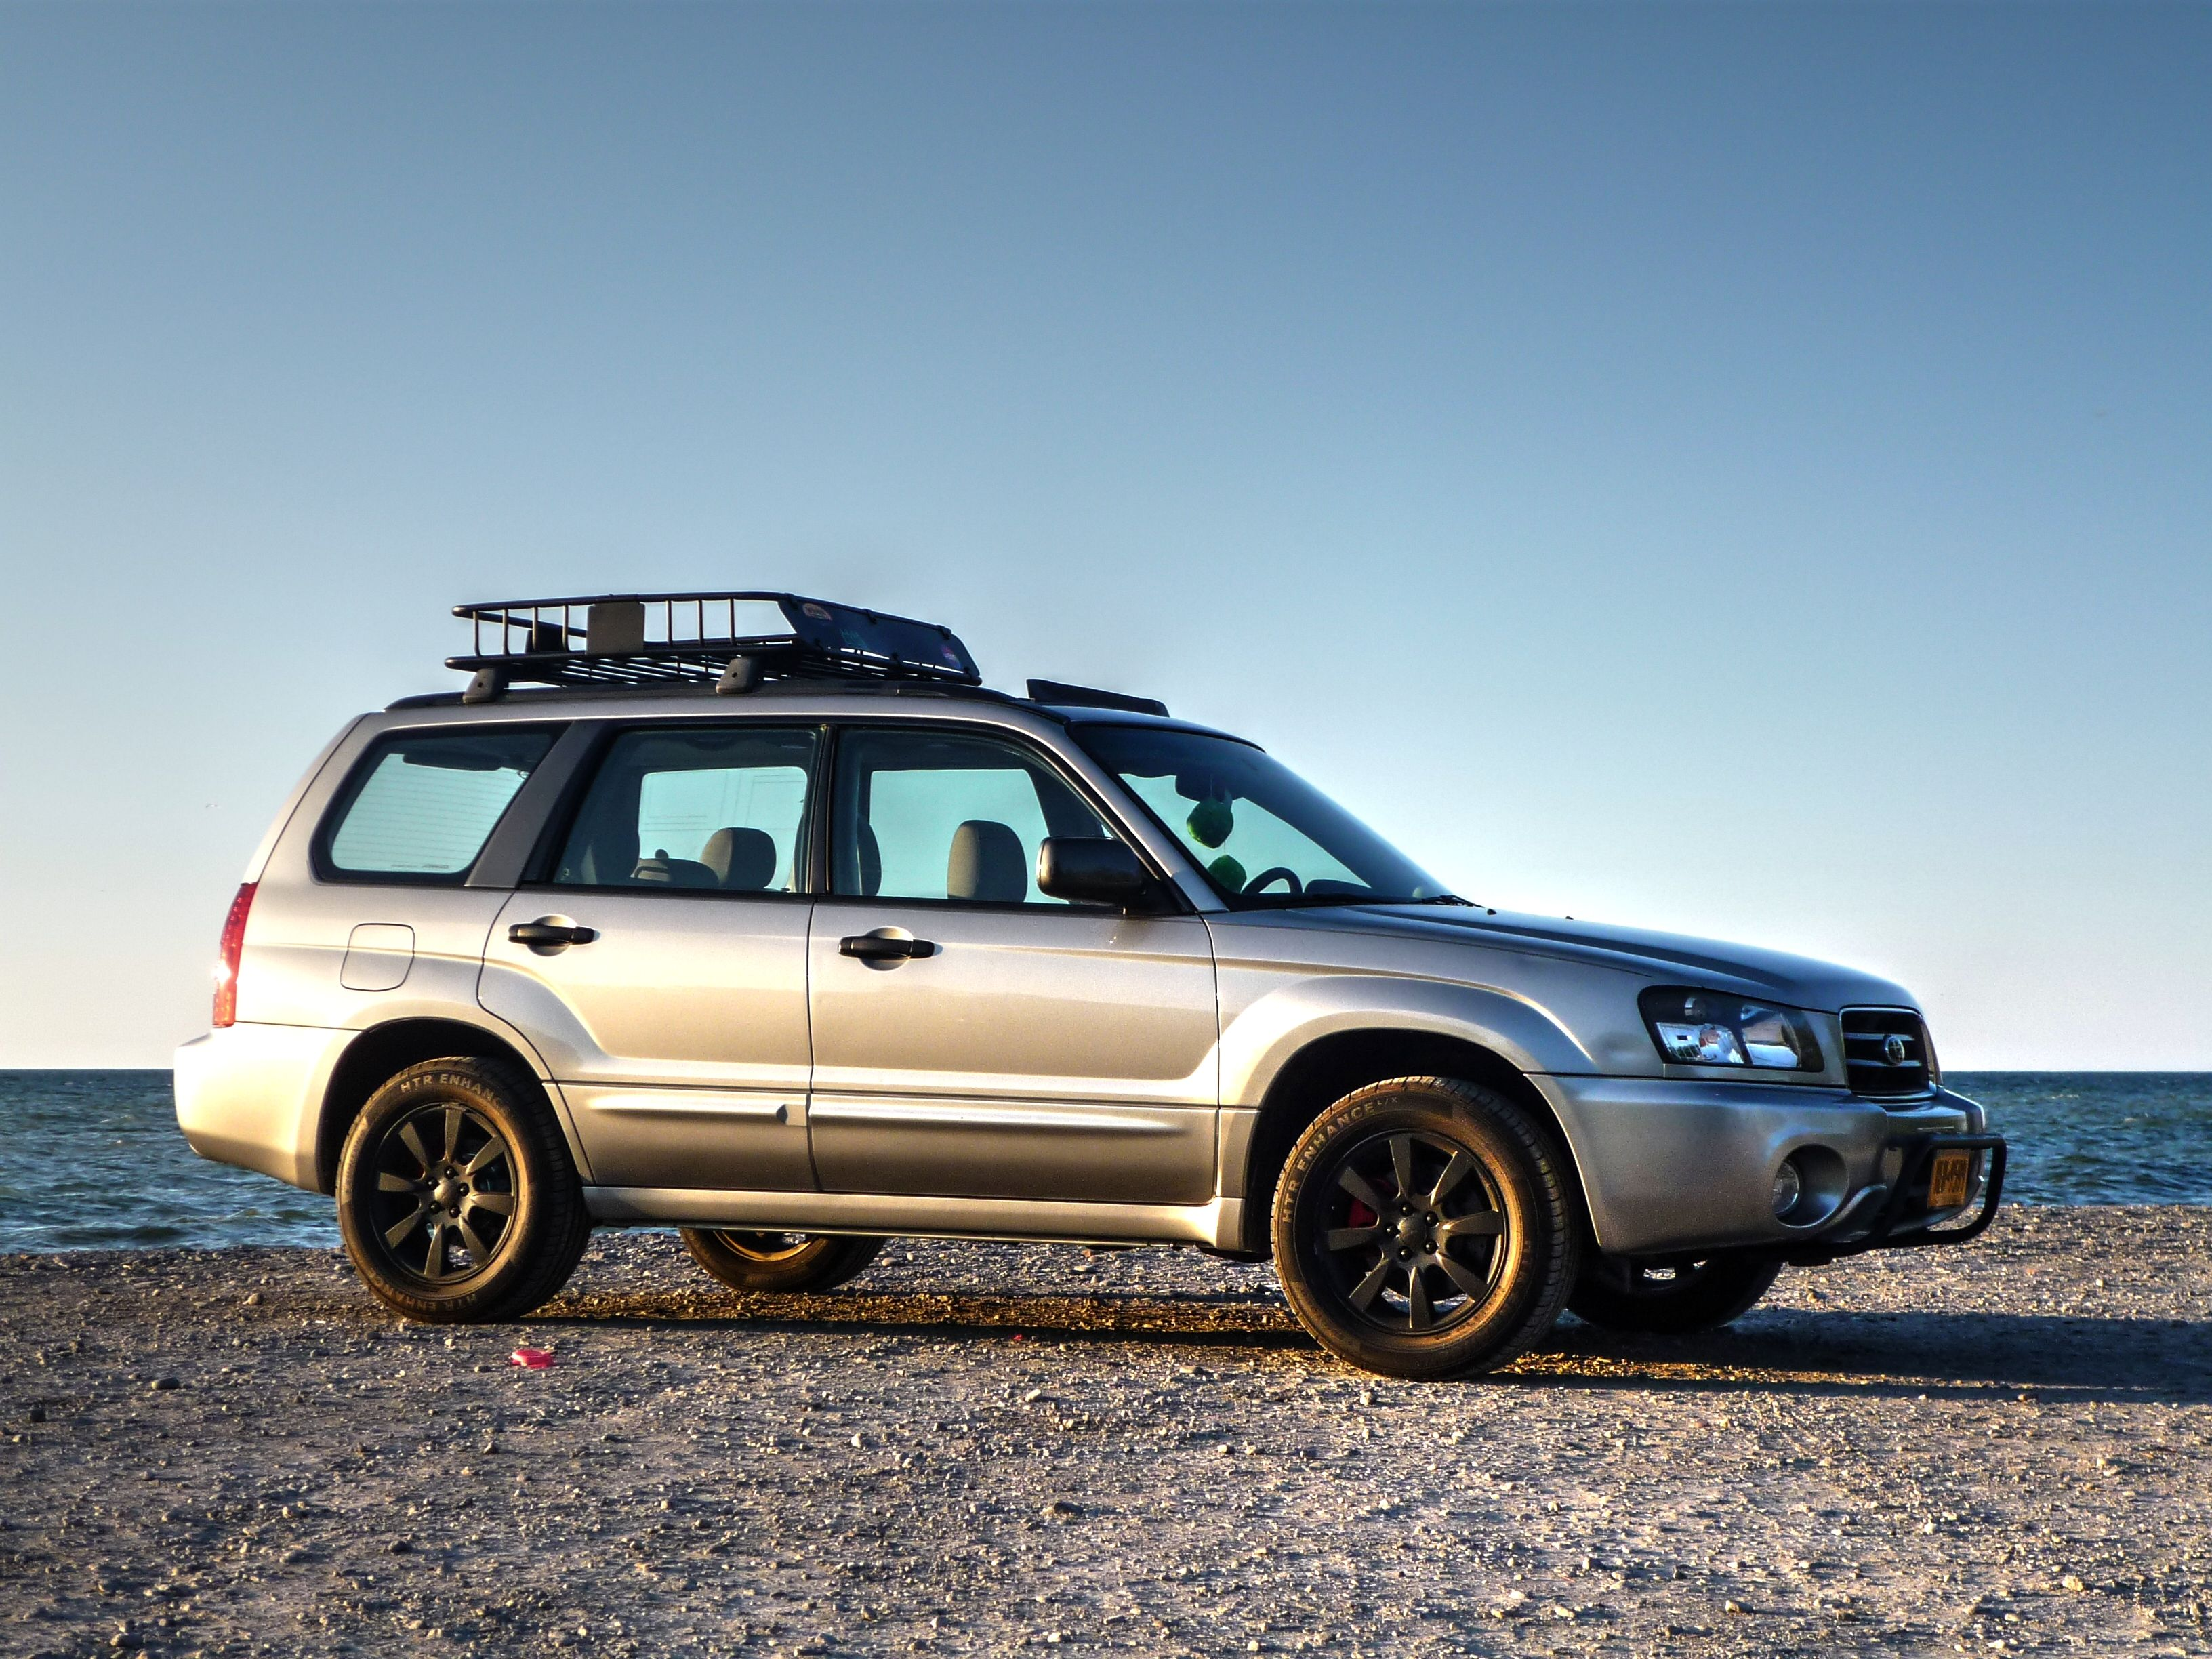 2005 Sg Cgm Crystal Gray Metallic Subaru Forester Foz